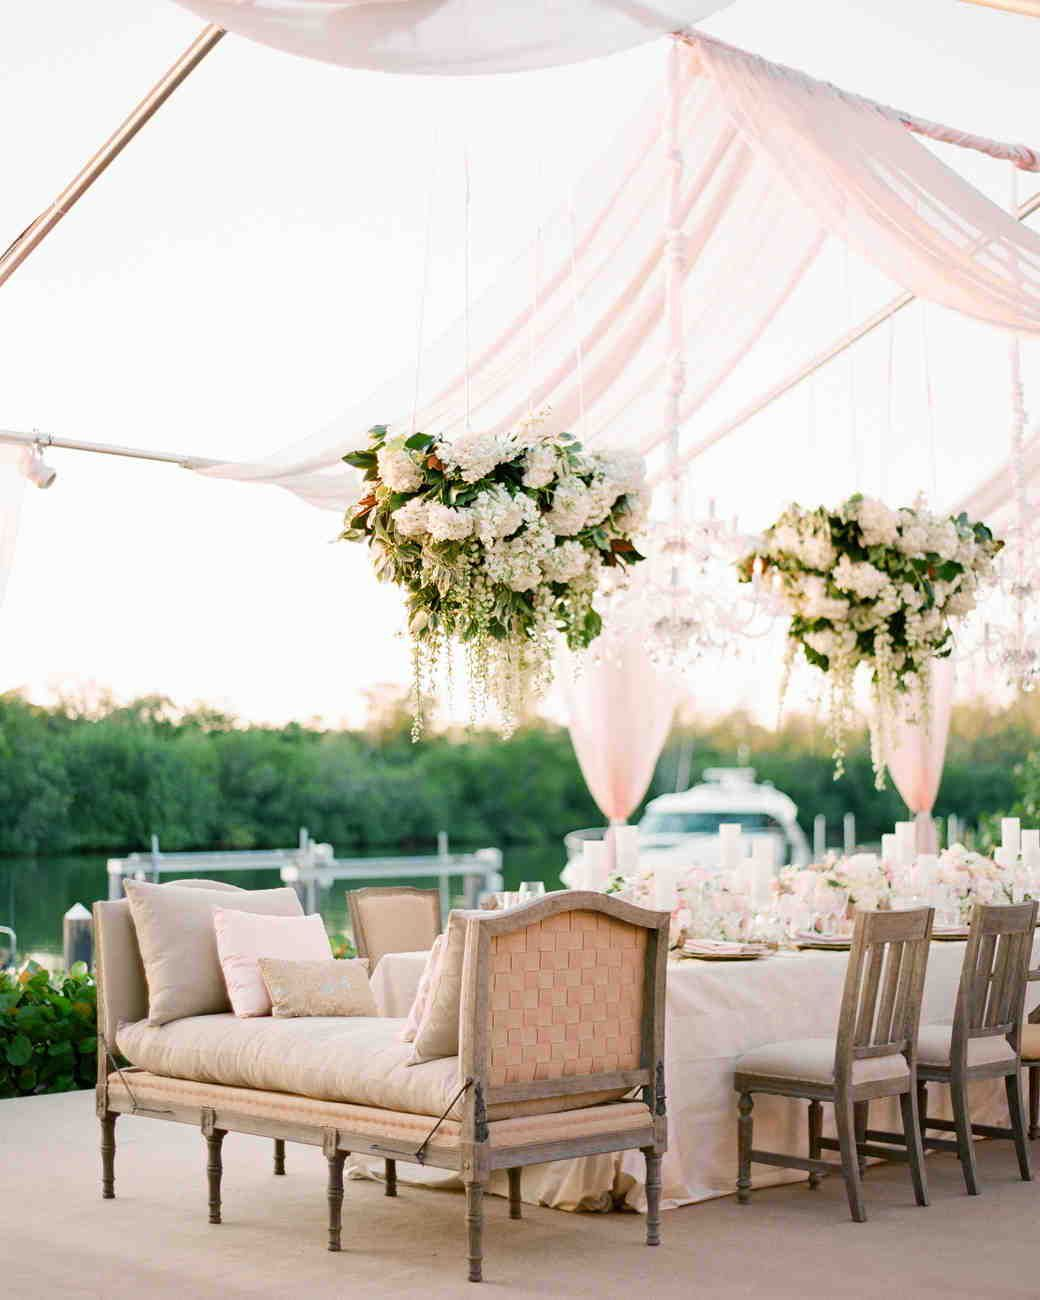 20 Unique Reception Seating Ideas That Will Surprise And